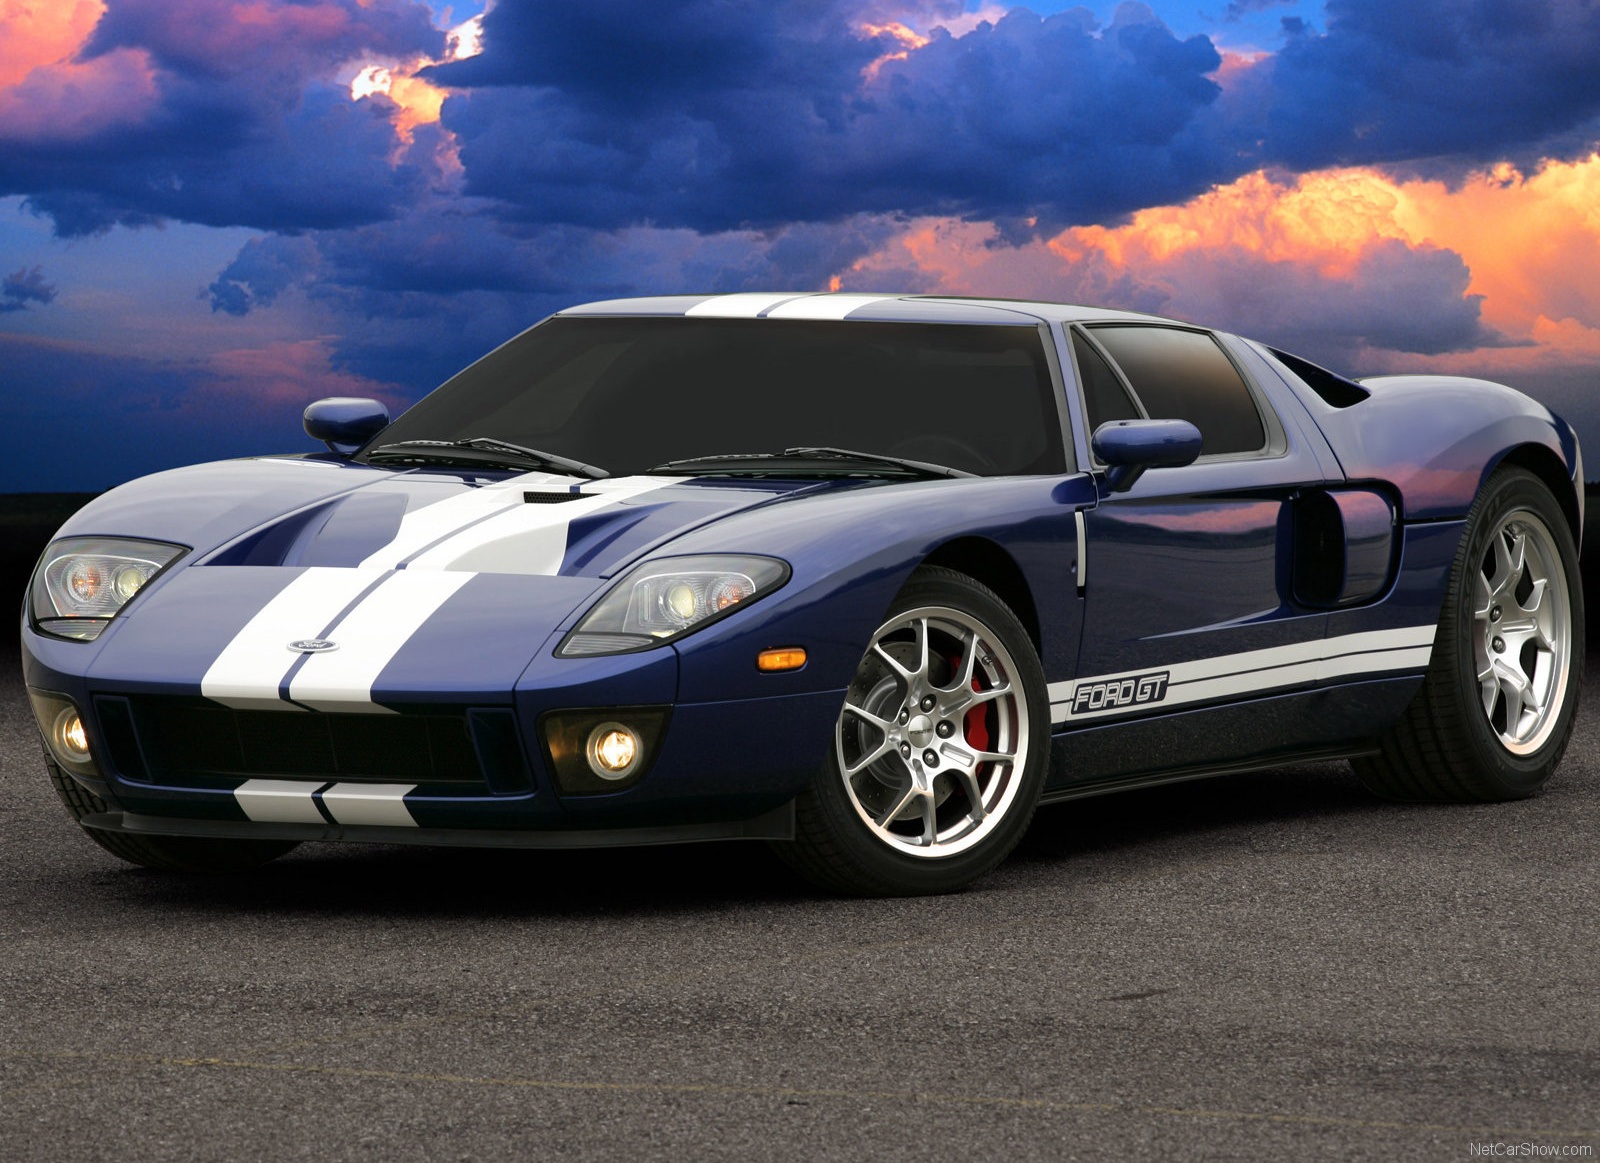 2005 Ford GT supercar